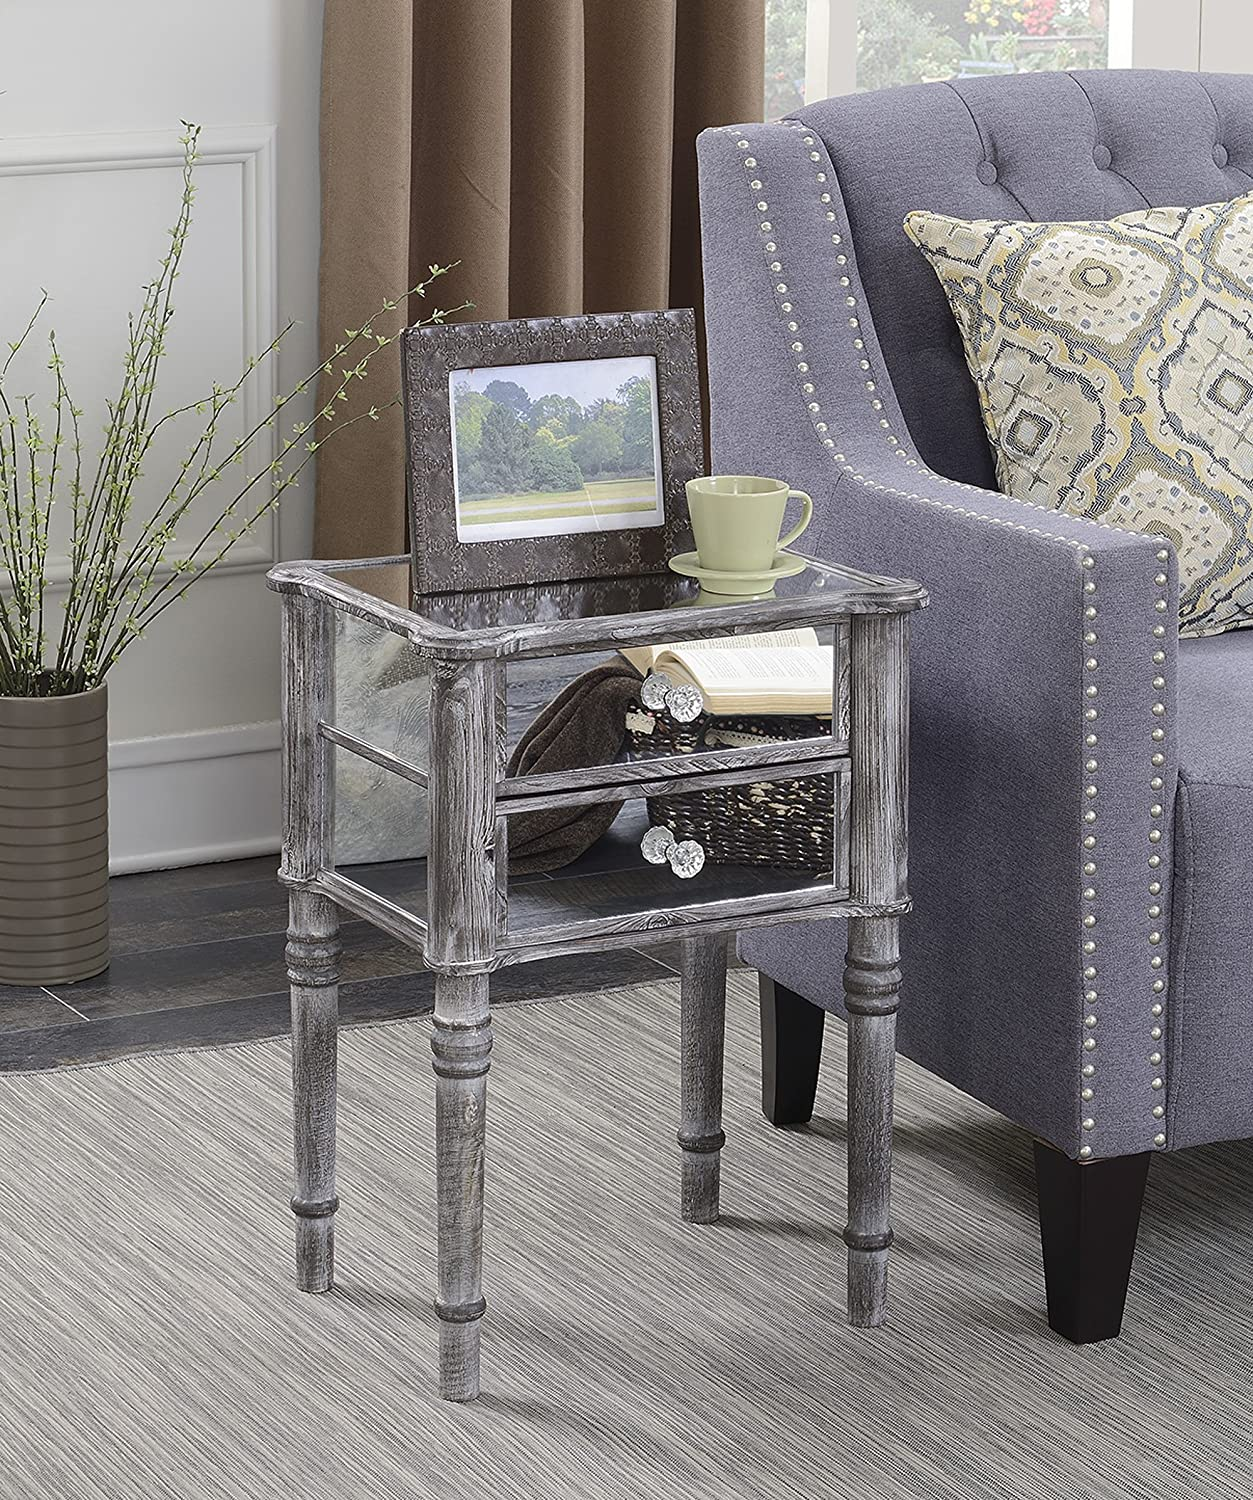 Convenience Concepts Gold Coast Collection Mayfair Mirrored End Table, Weathered Gray